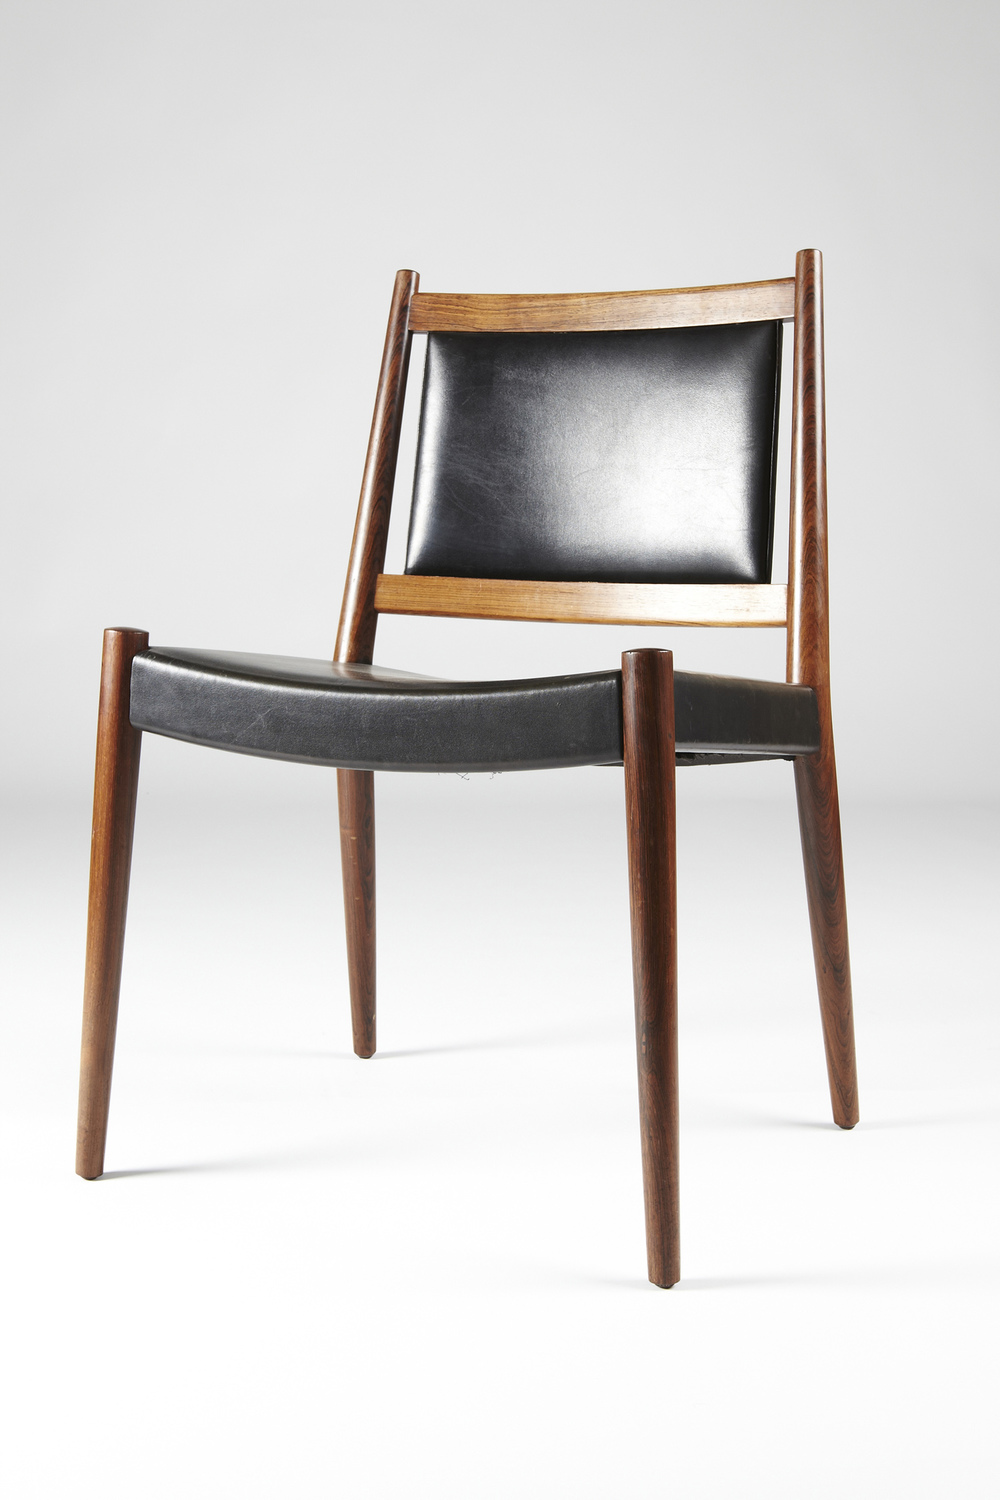 S S     Larsen 1955 D  ining Chair   • made 1955-69     •